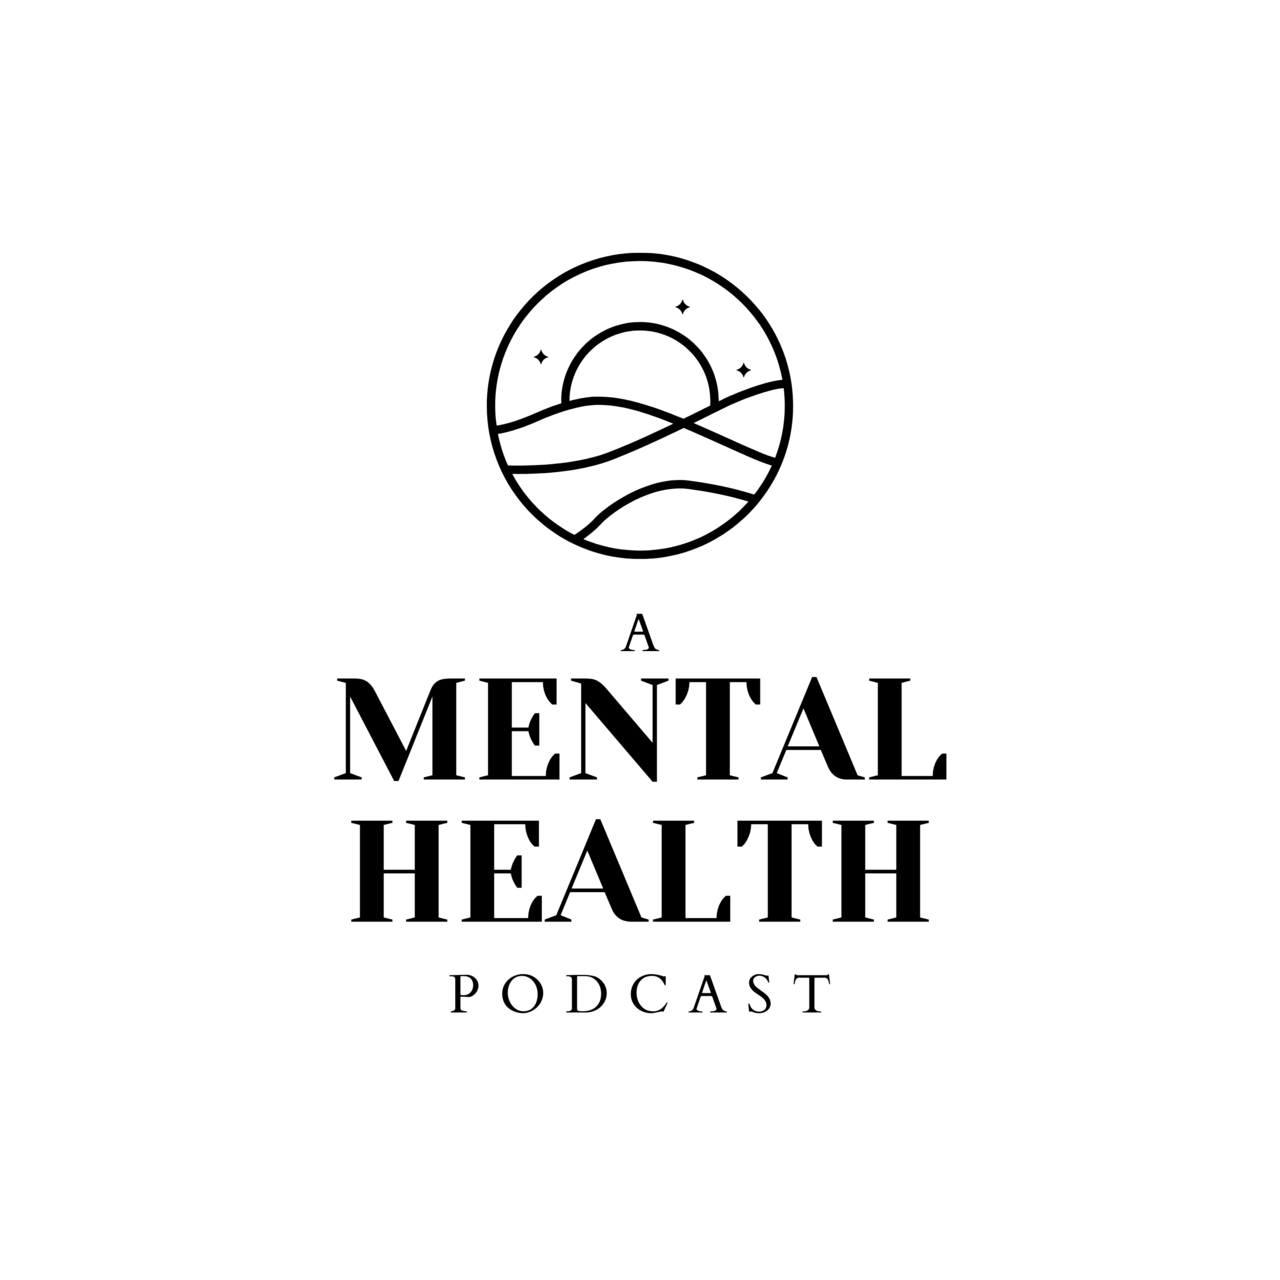 A Mental Health Podcast